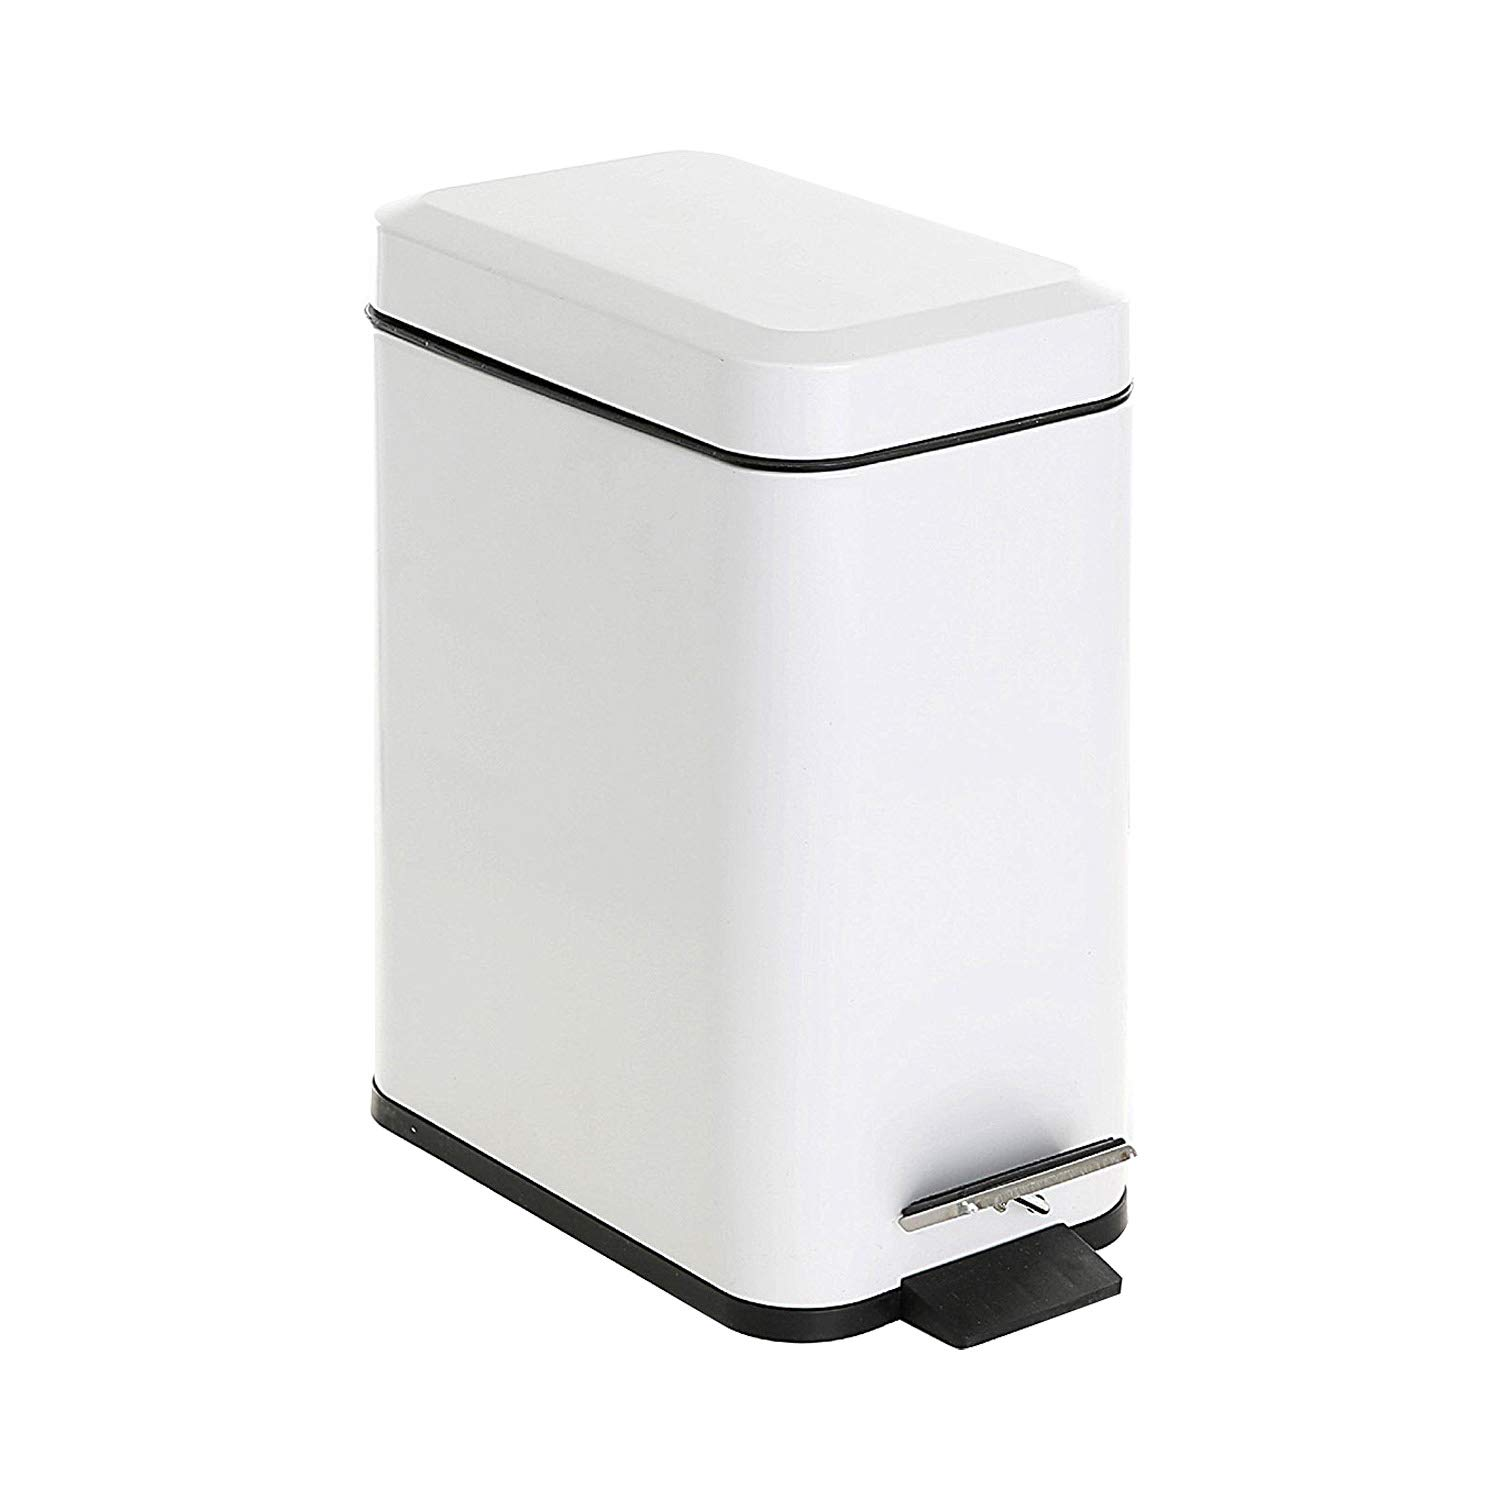 GiniHome Office Bin, Small Trash Can for Kitchen & Bathroom, Waste Basket-Soft Close, Waterproof and Easy to Clean-5 Liter/1.3 Gallon (White) Cuboid S Step Lids by GiniHome